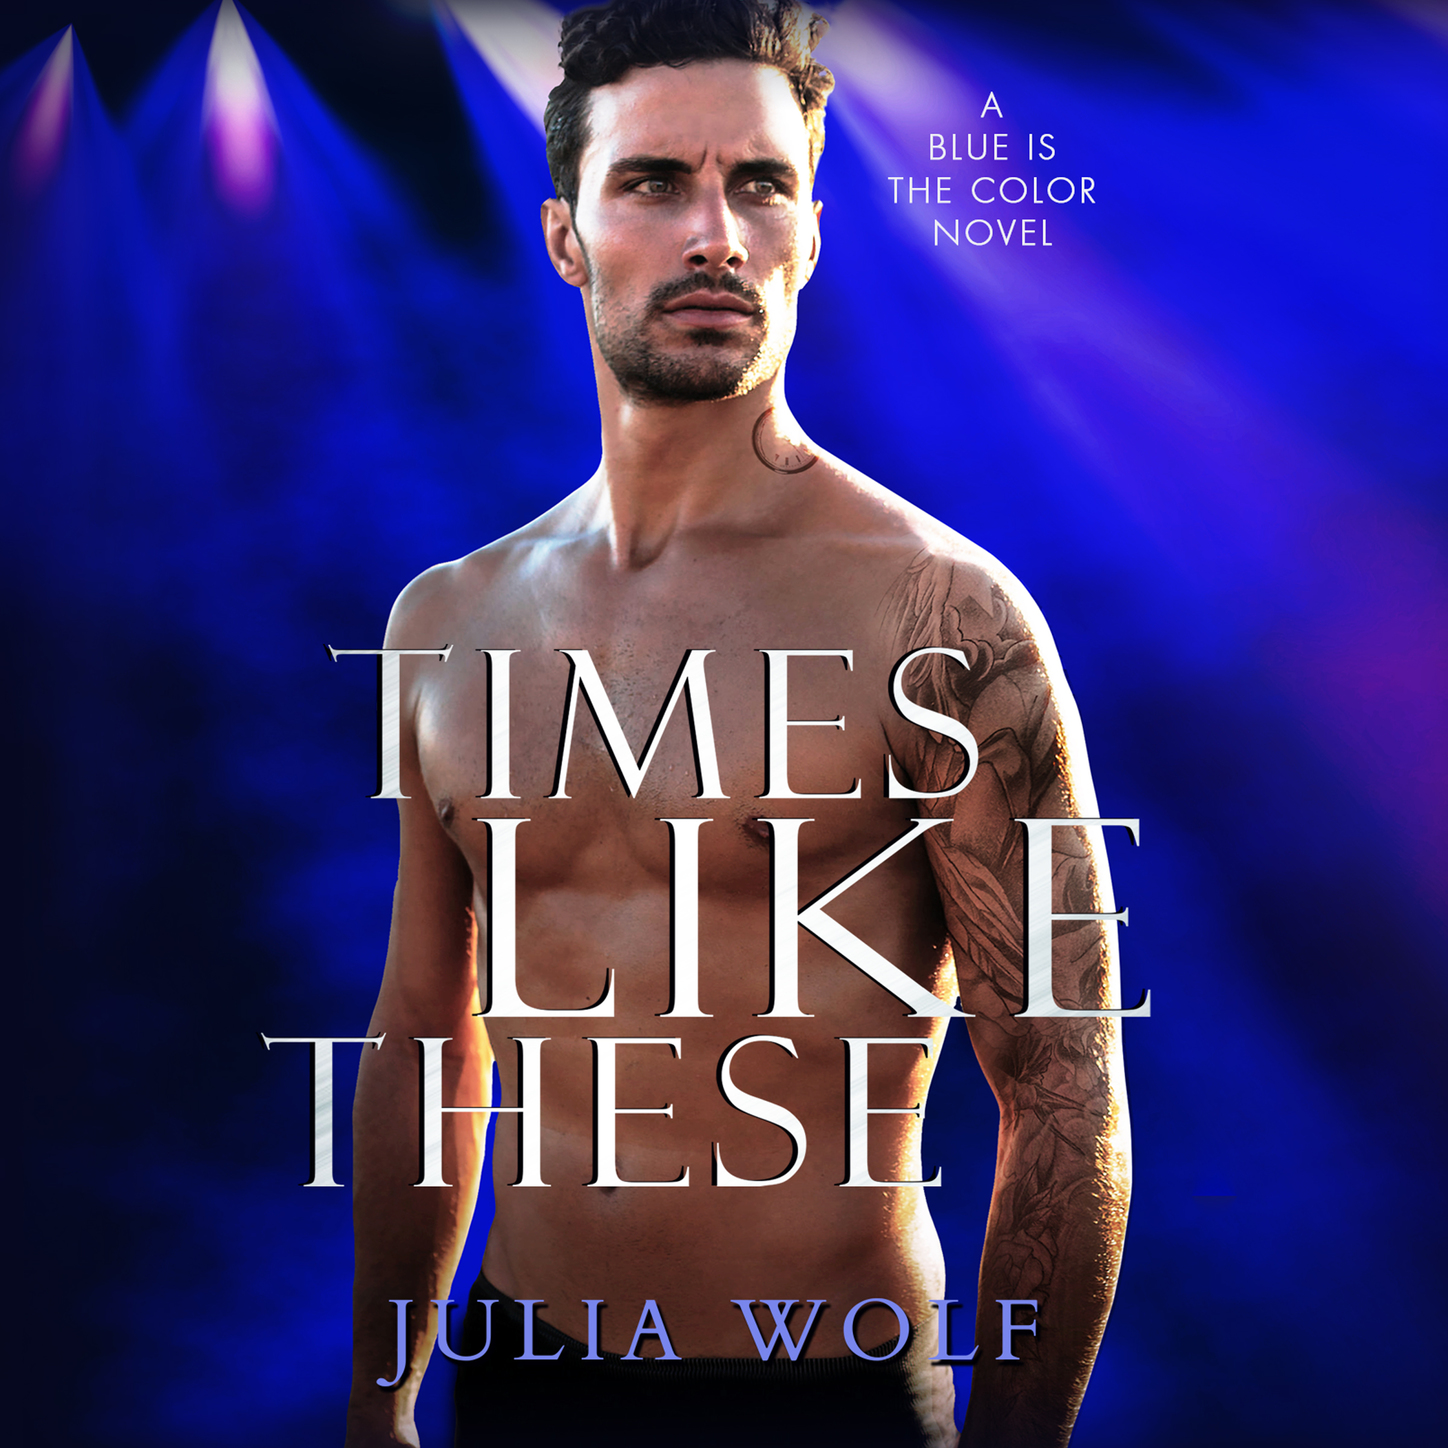 Julia Wolf Times Like These - A Rock Star Romance - Blue Is the Color, Book 1 (Unabridged) donaldson julia ogilvie sara the detective dog sticker book